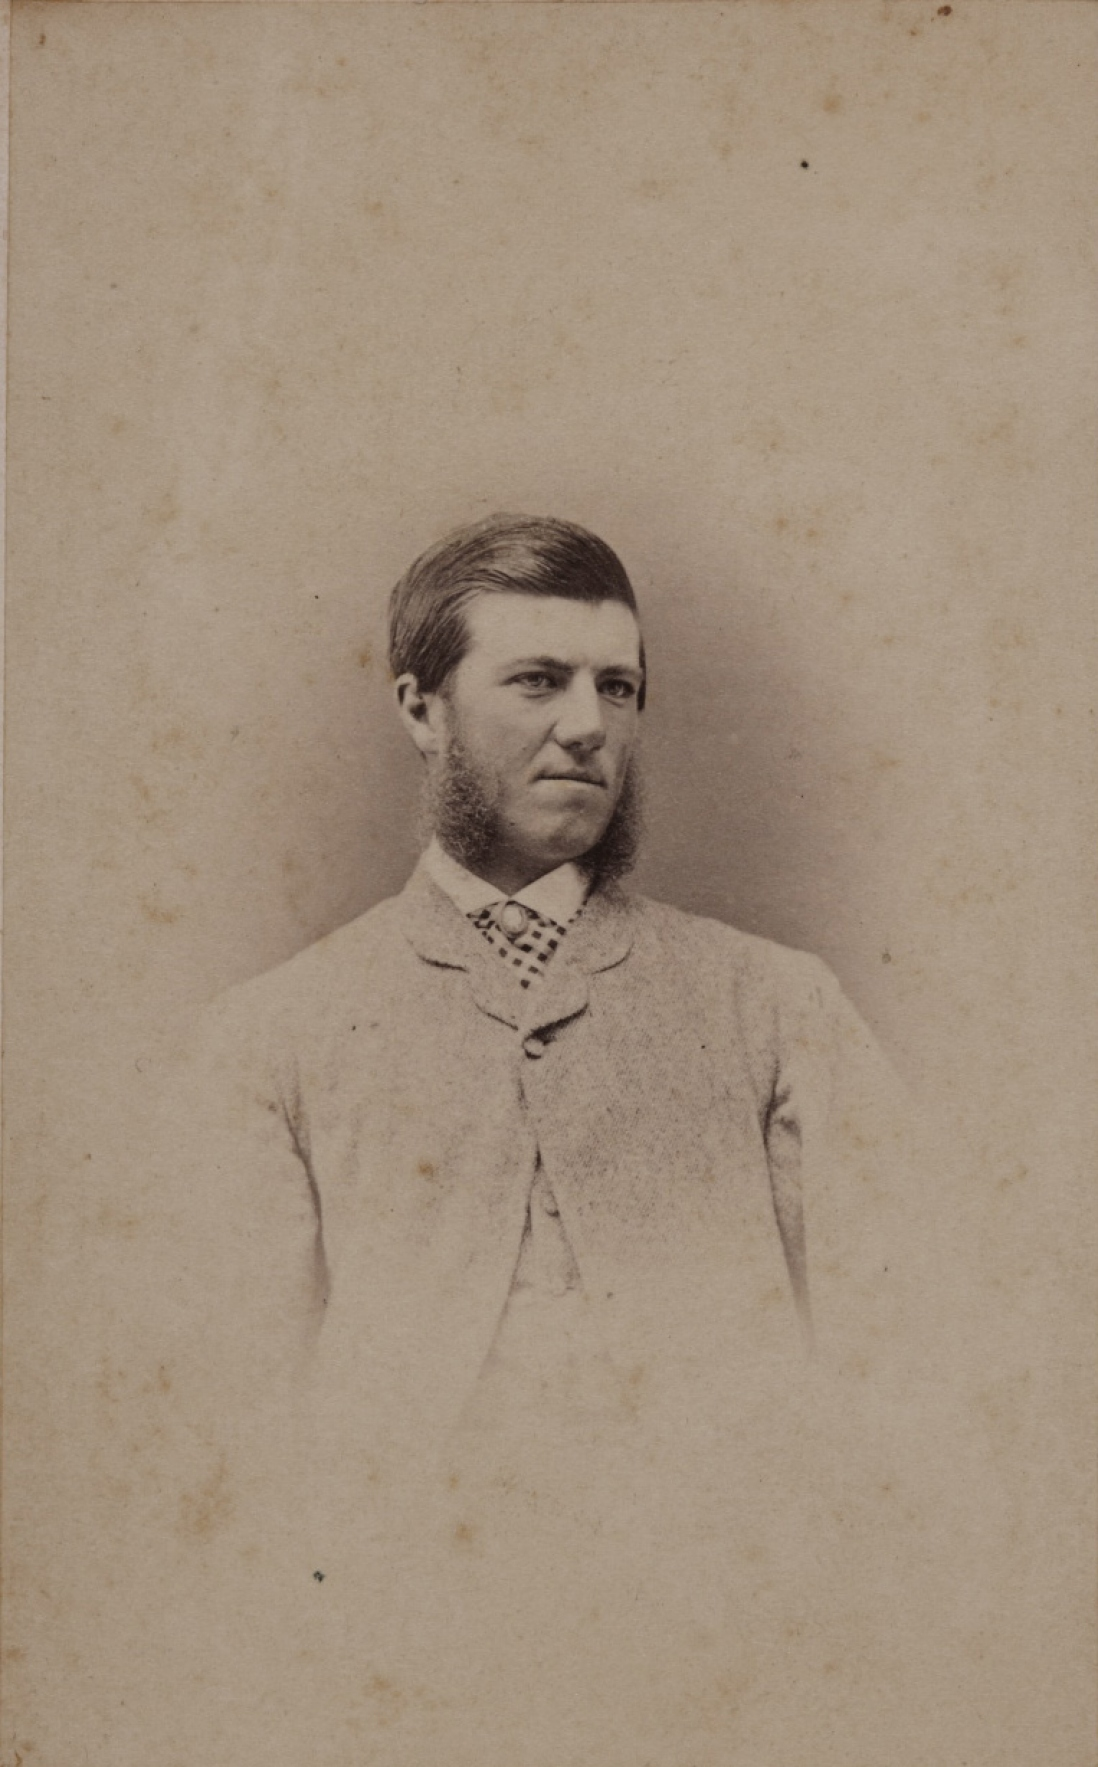 Black and white portrait of man with mutton chop whiskers.